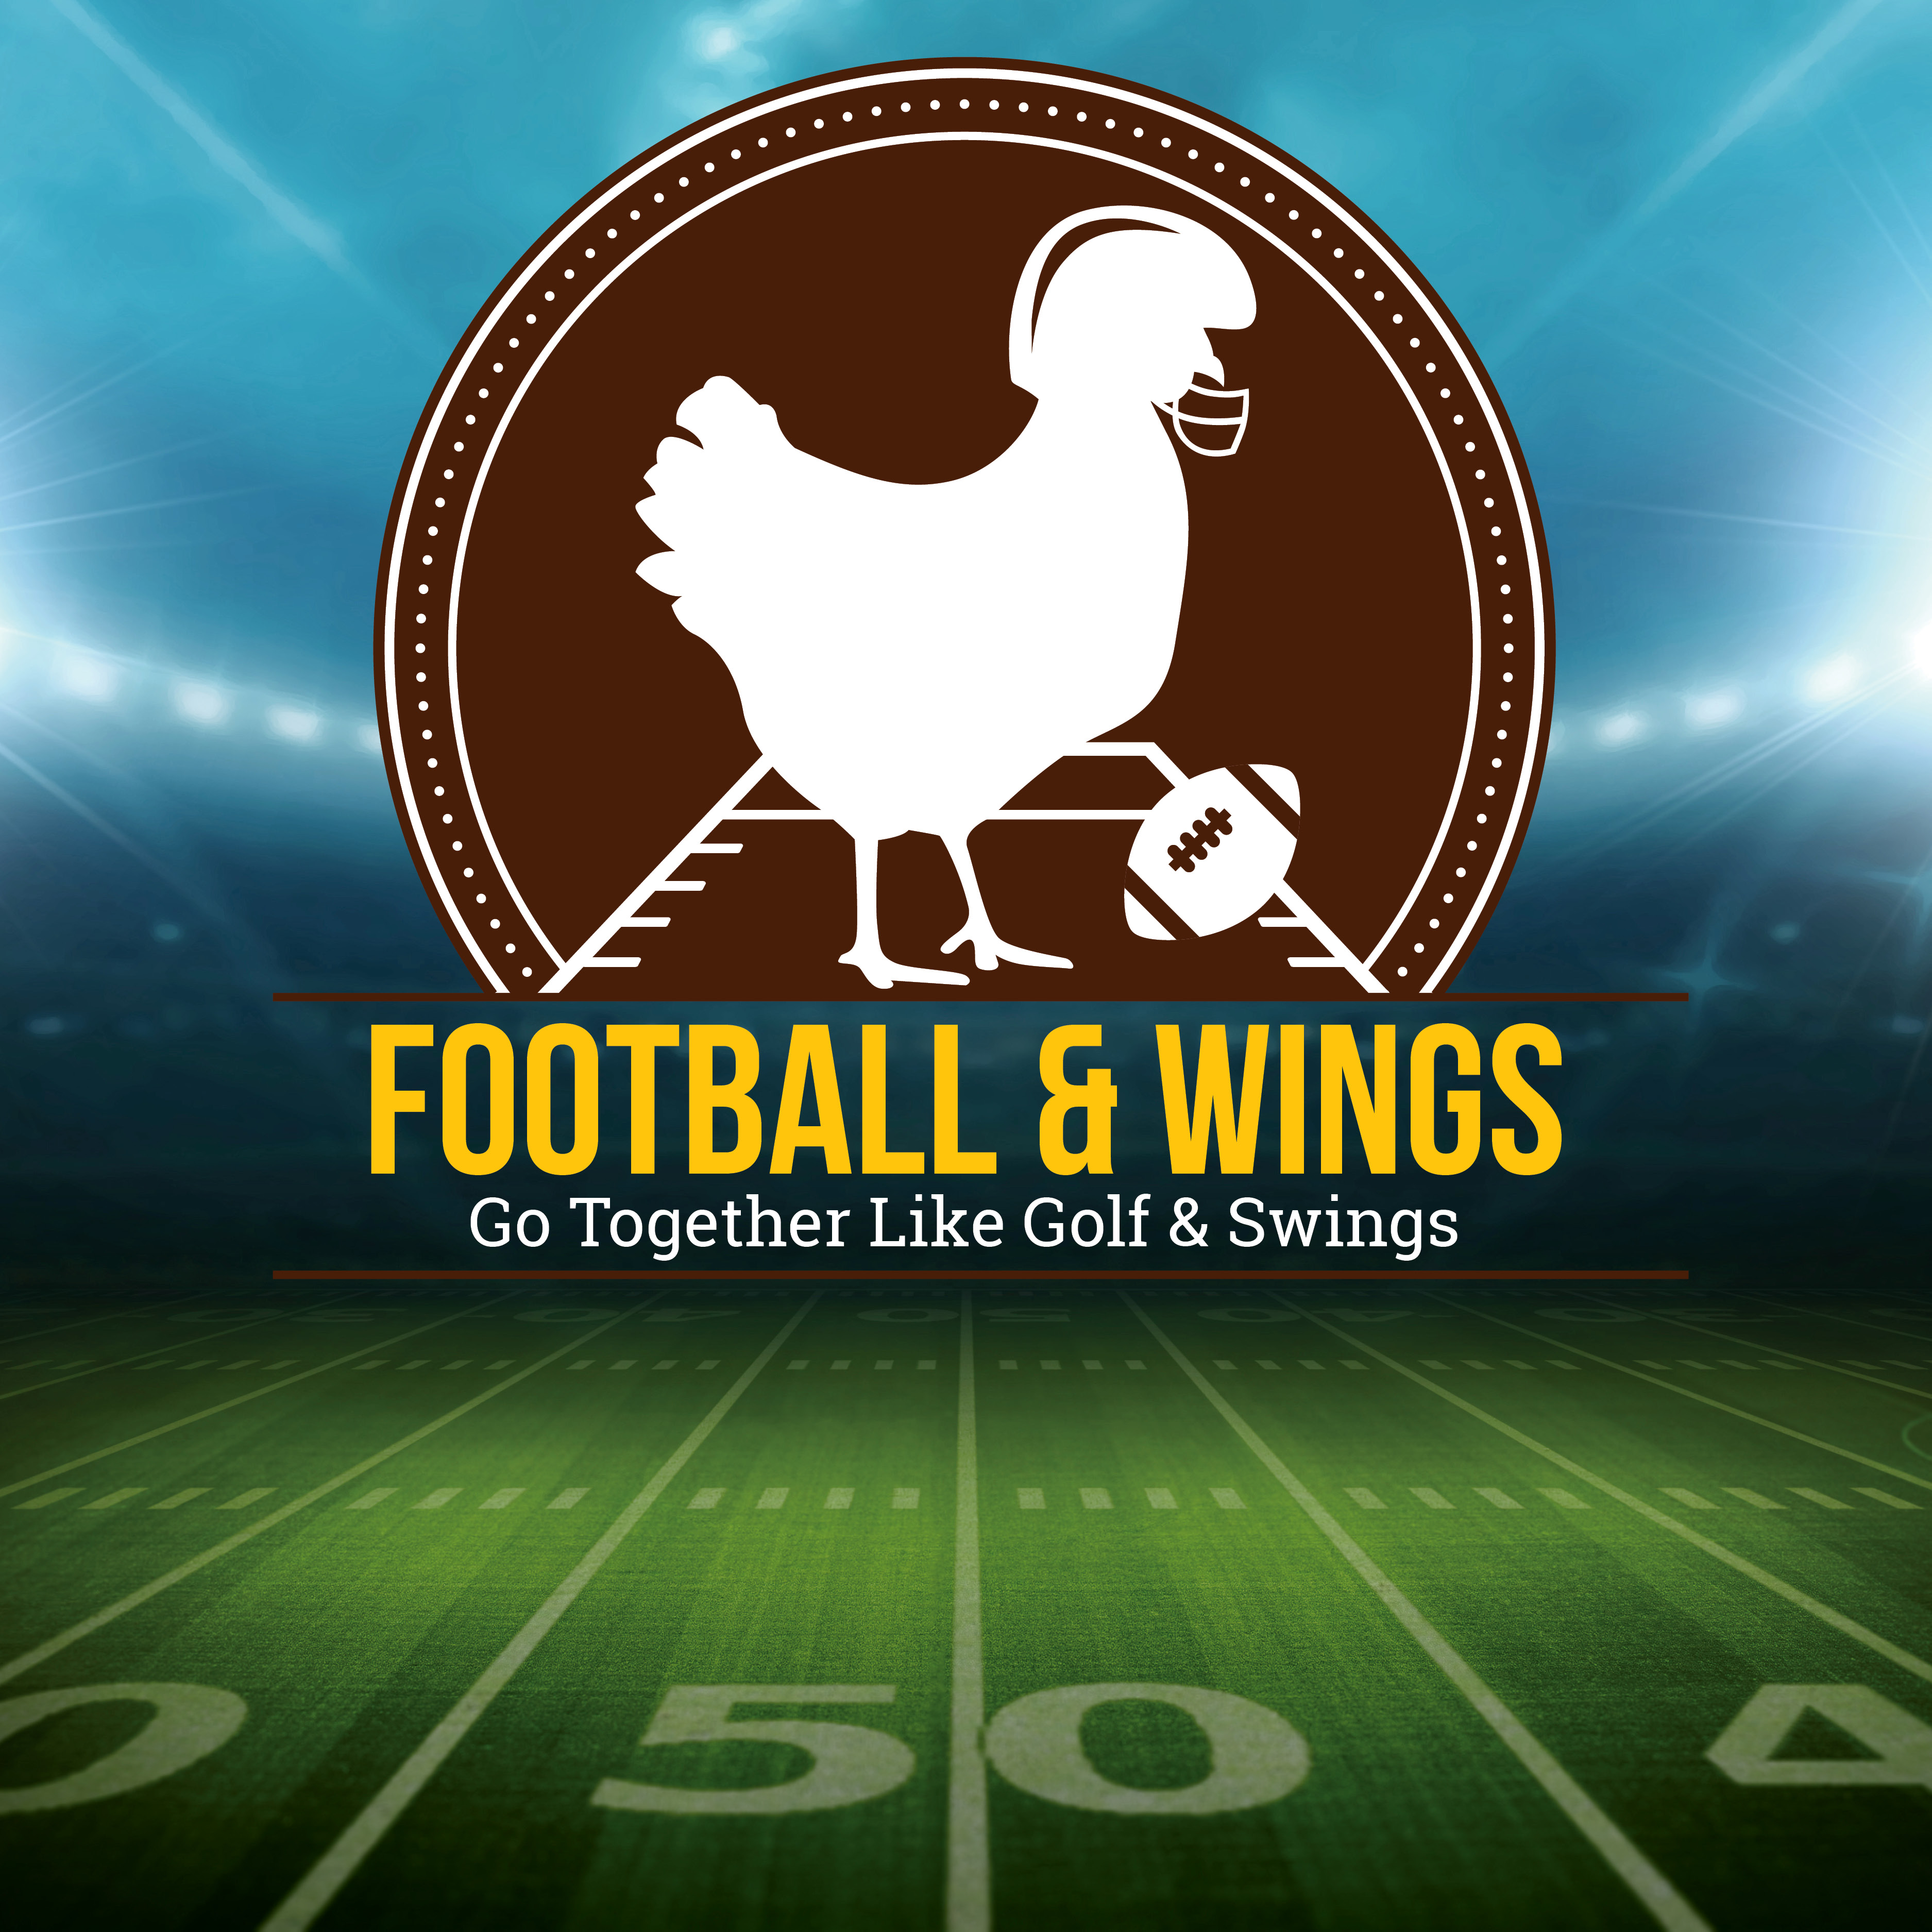 Football and Wings at Colony West Golf Club in Tamarac, FL